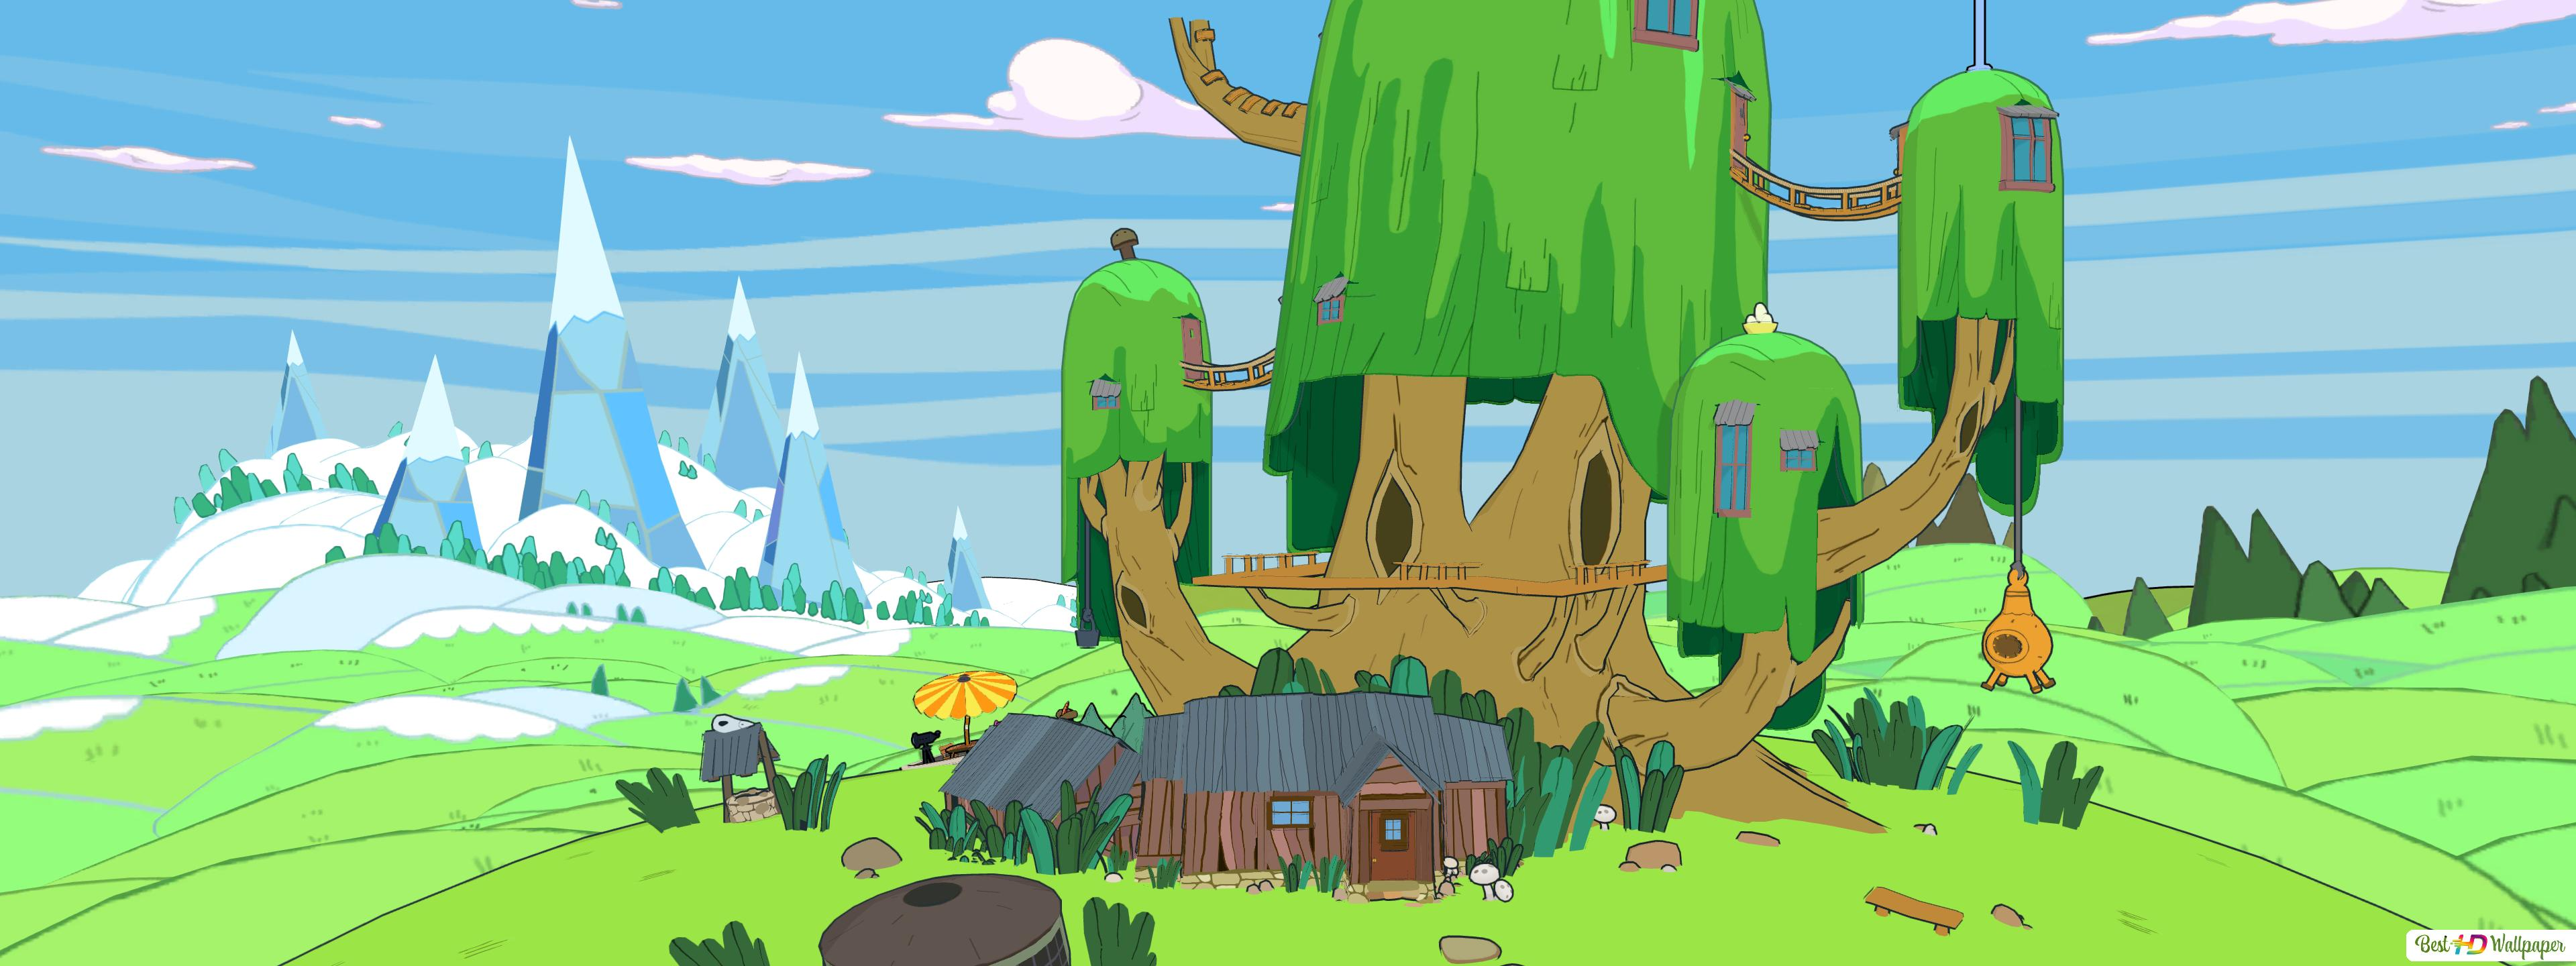 The Castle Tree In Adventure Time Pirates Of The Enchiridion Hd